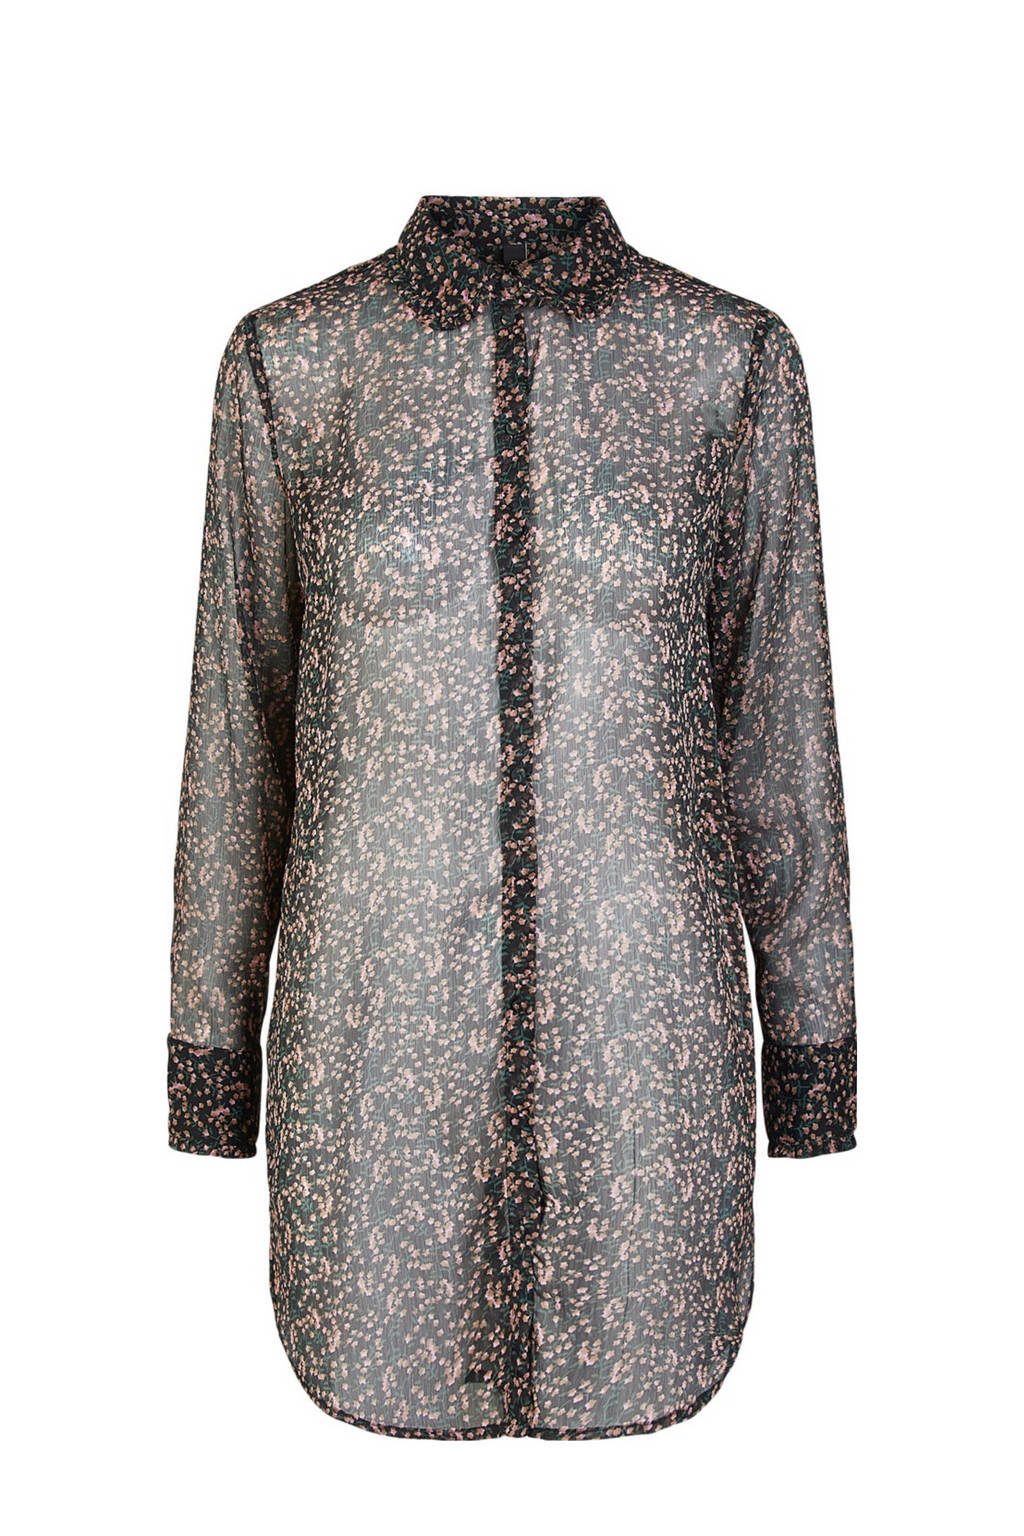 Y.A.S blouse met all over print zwart, Zwart